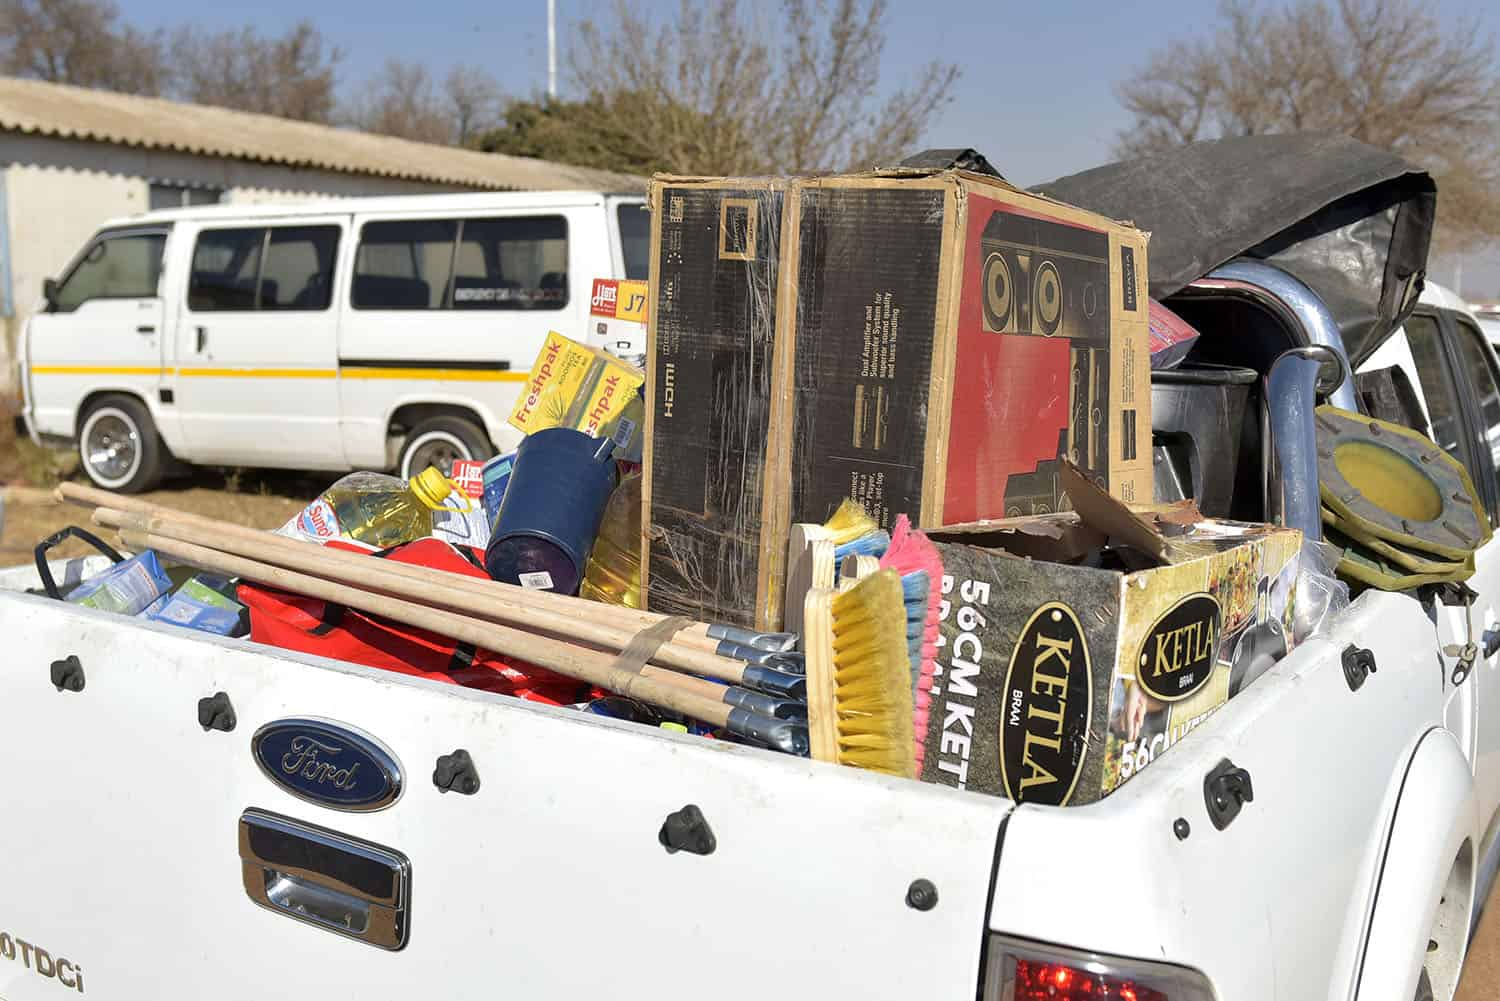 Some of the confiscated items during an operation to recover looted items at the Nguni hostel in Vosloorus, 27 July 2021. Picture: Neil McCartney